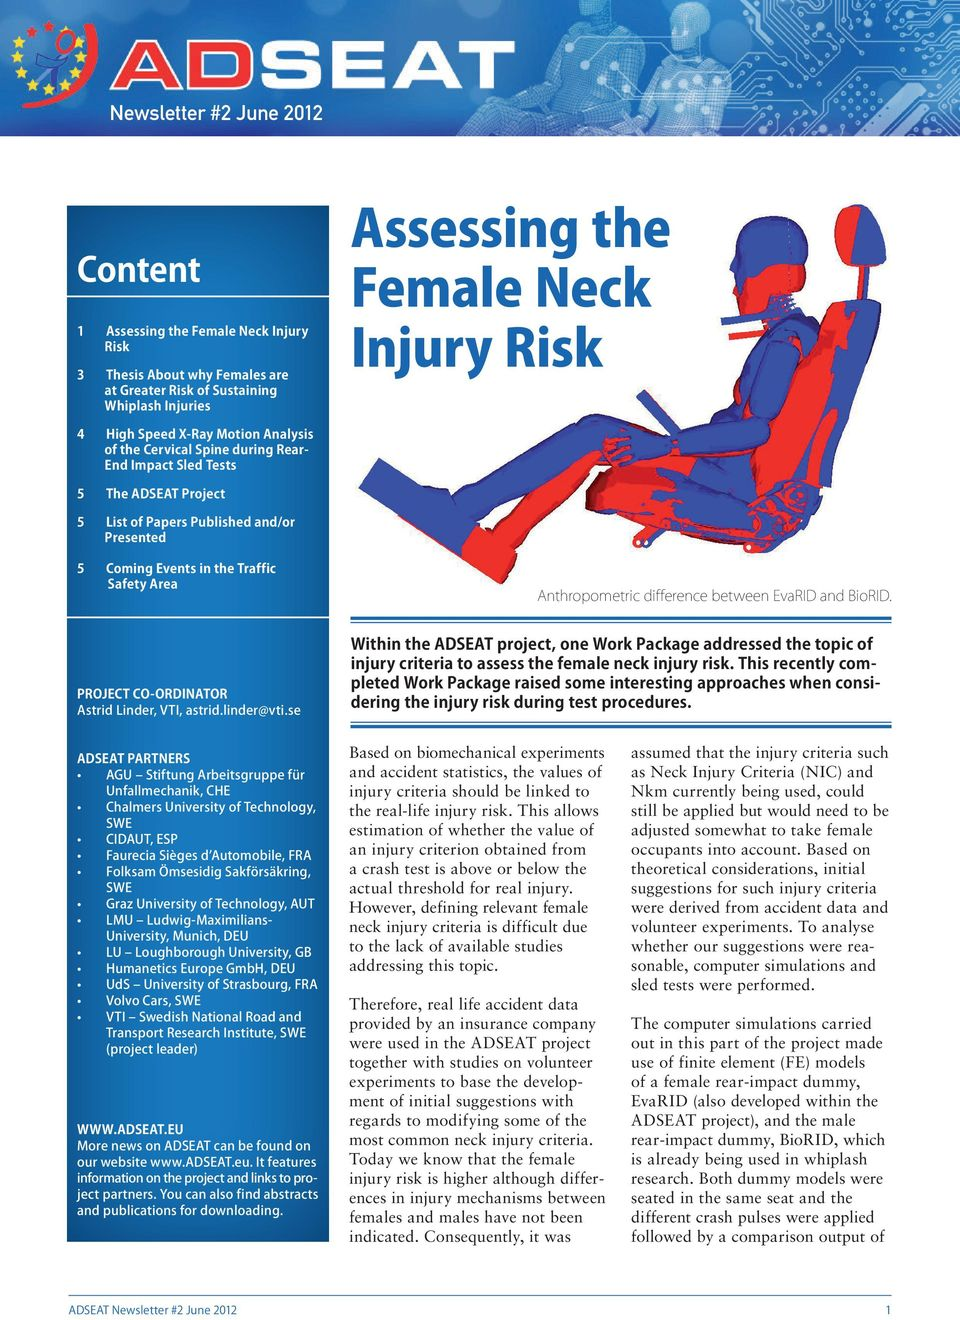 EvaRID and BioRID. PROJECT CO-ORDINATOR Within the ADSEAT project, one Work Package addressed the topic of injury criteria to assess the female neck injury risk.